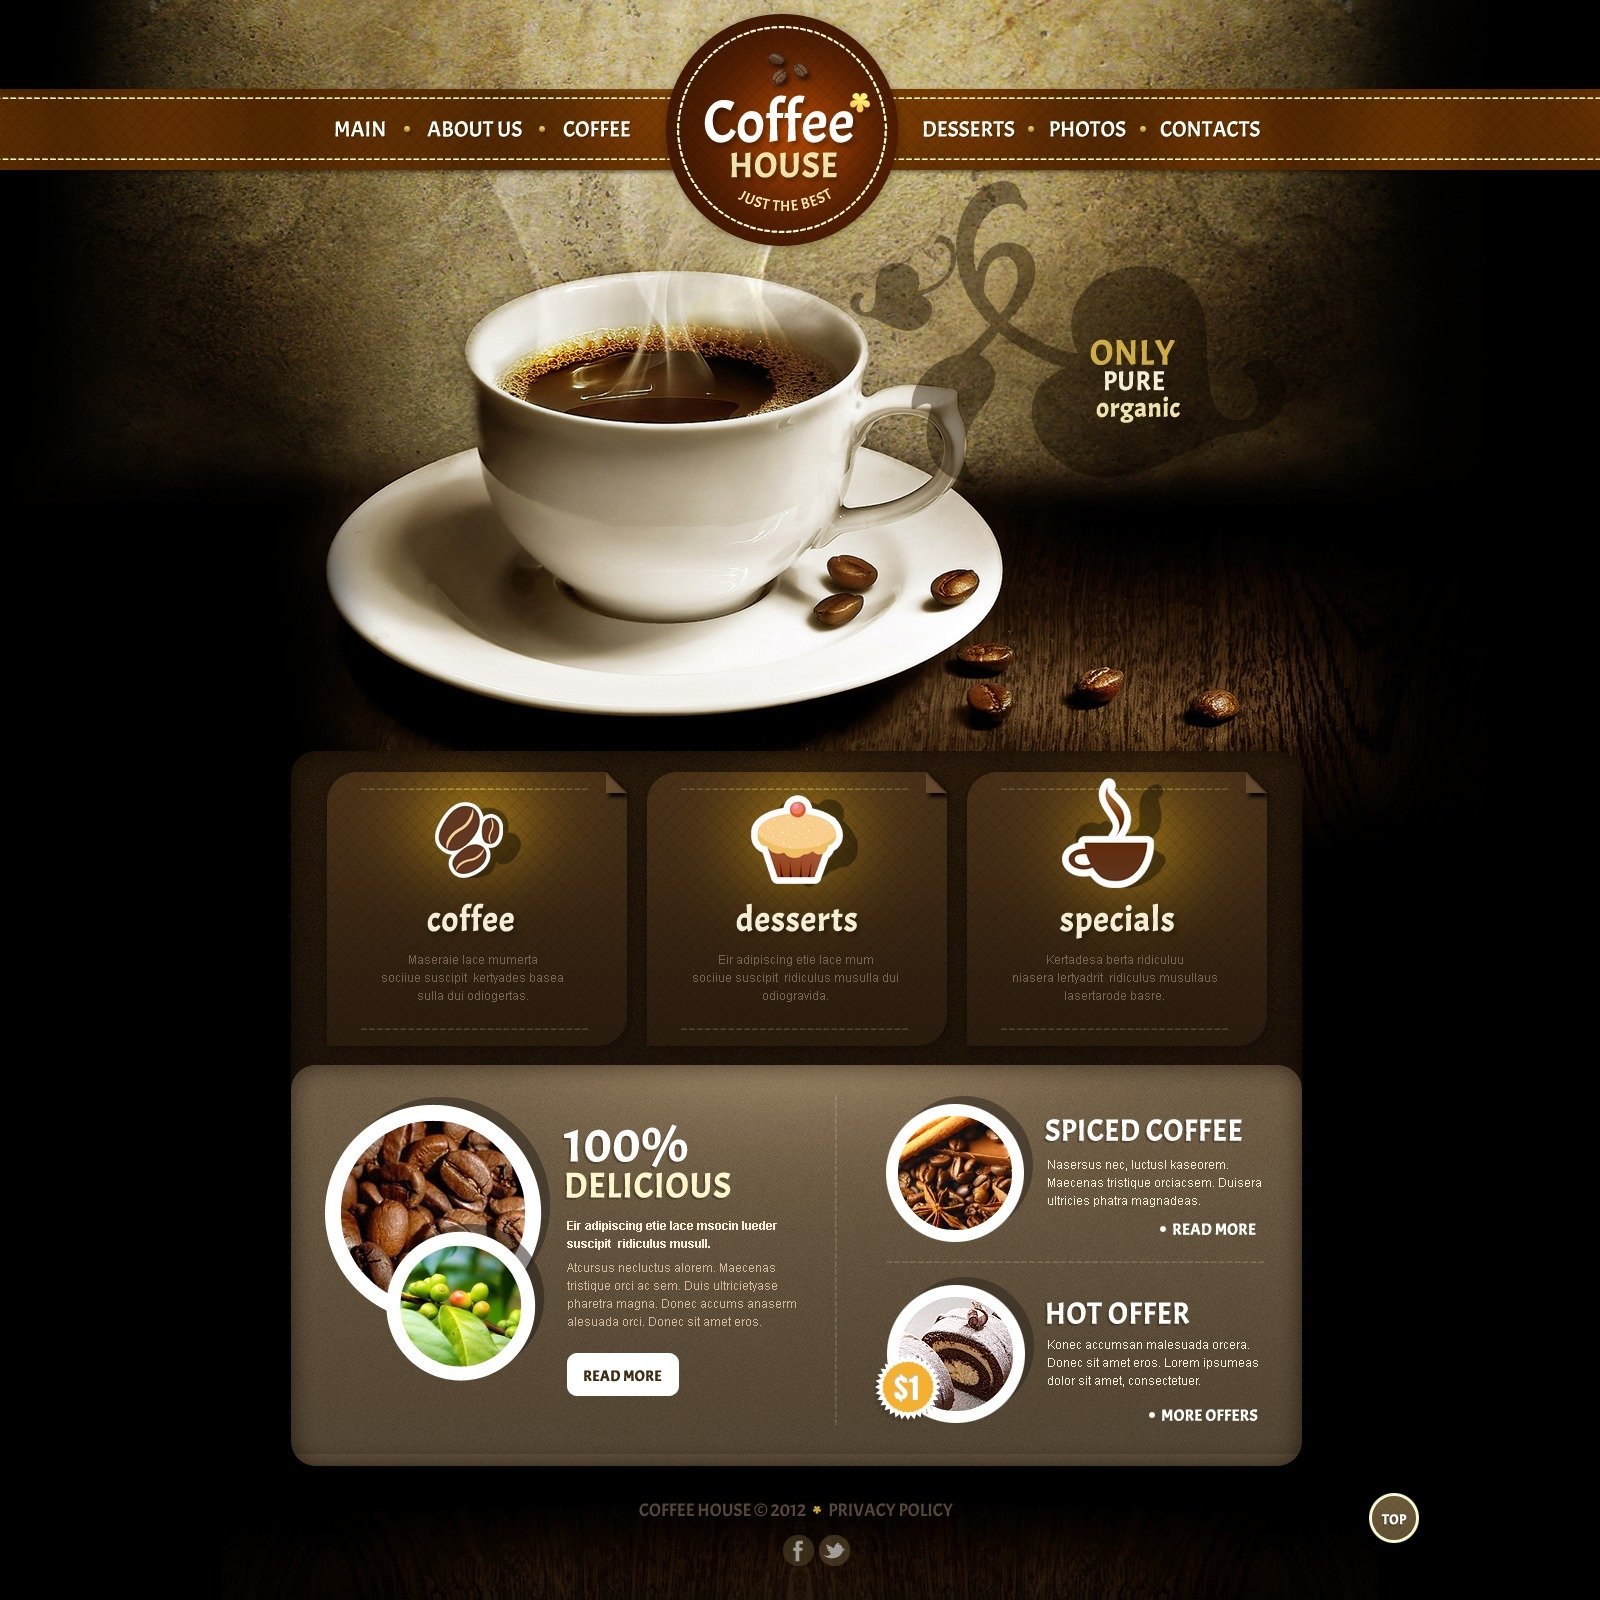 coffee shop joomla template 39035. Black Bedroom Furniture Sets. Home Design Ideas